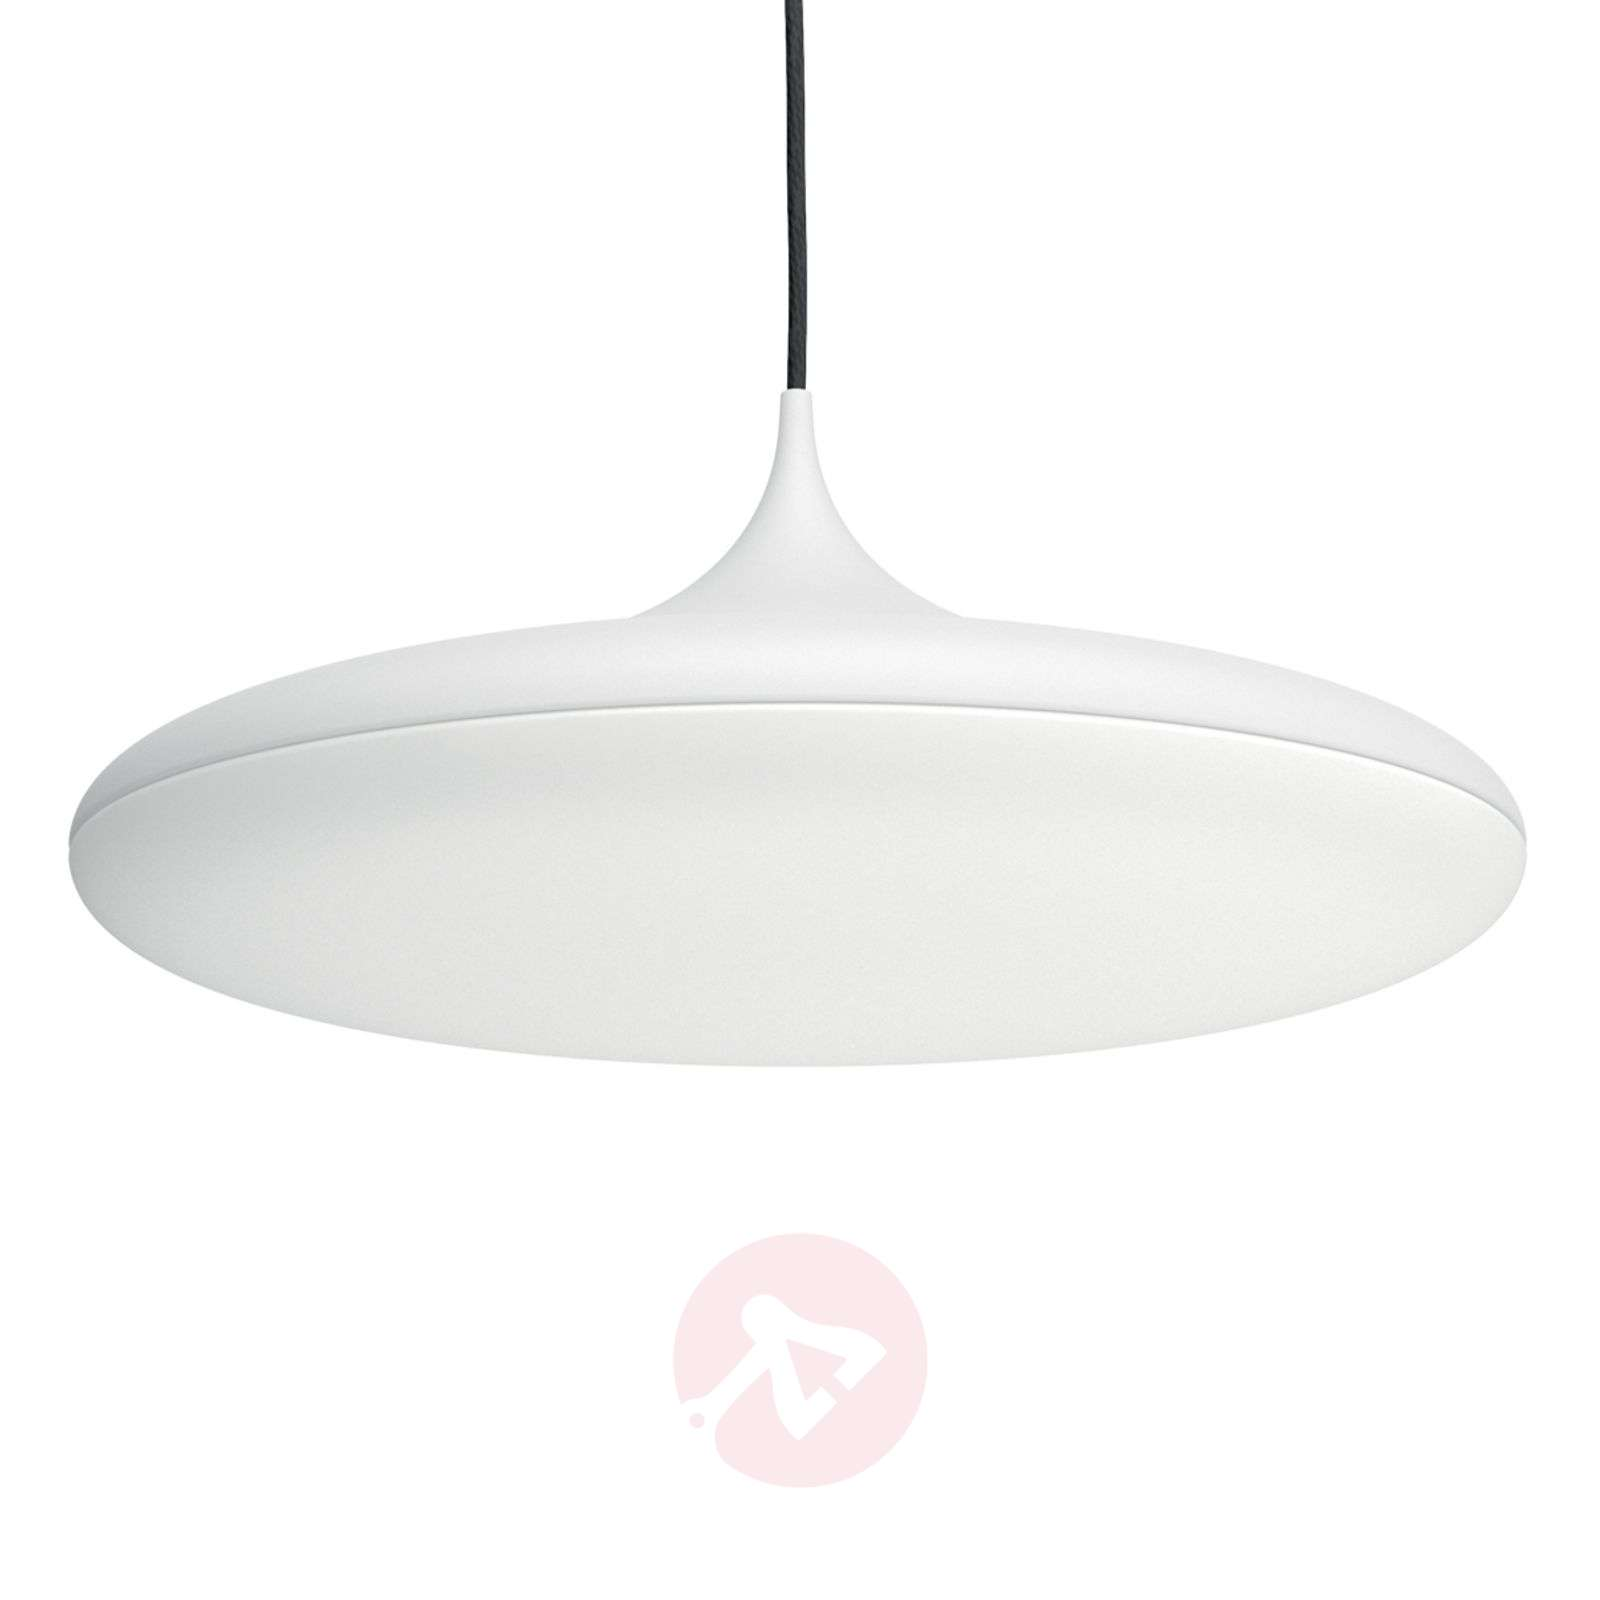 Cher Controllable Philips Hue Led Hanging Lamp 7532058x 01